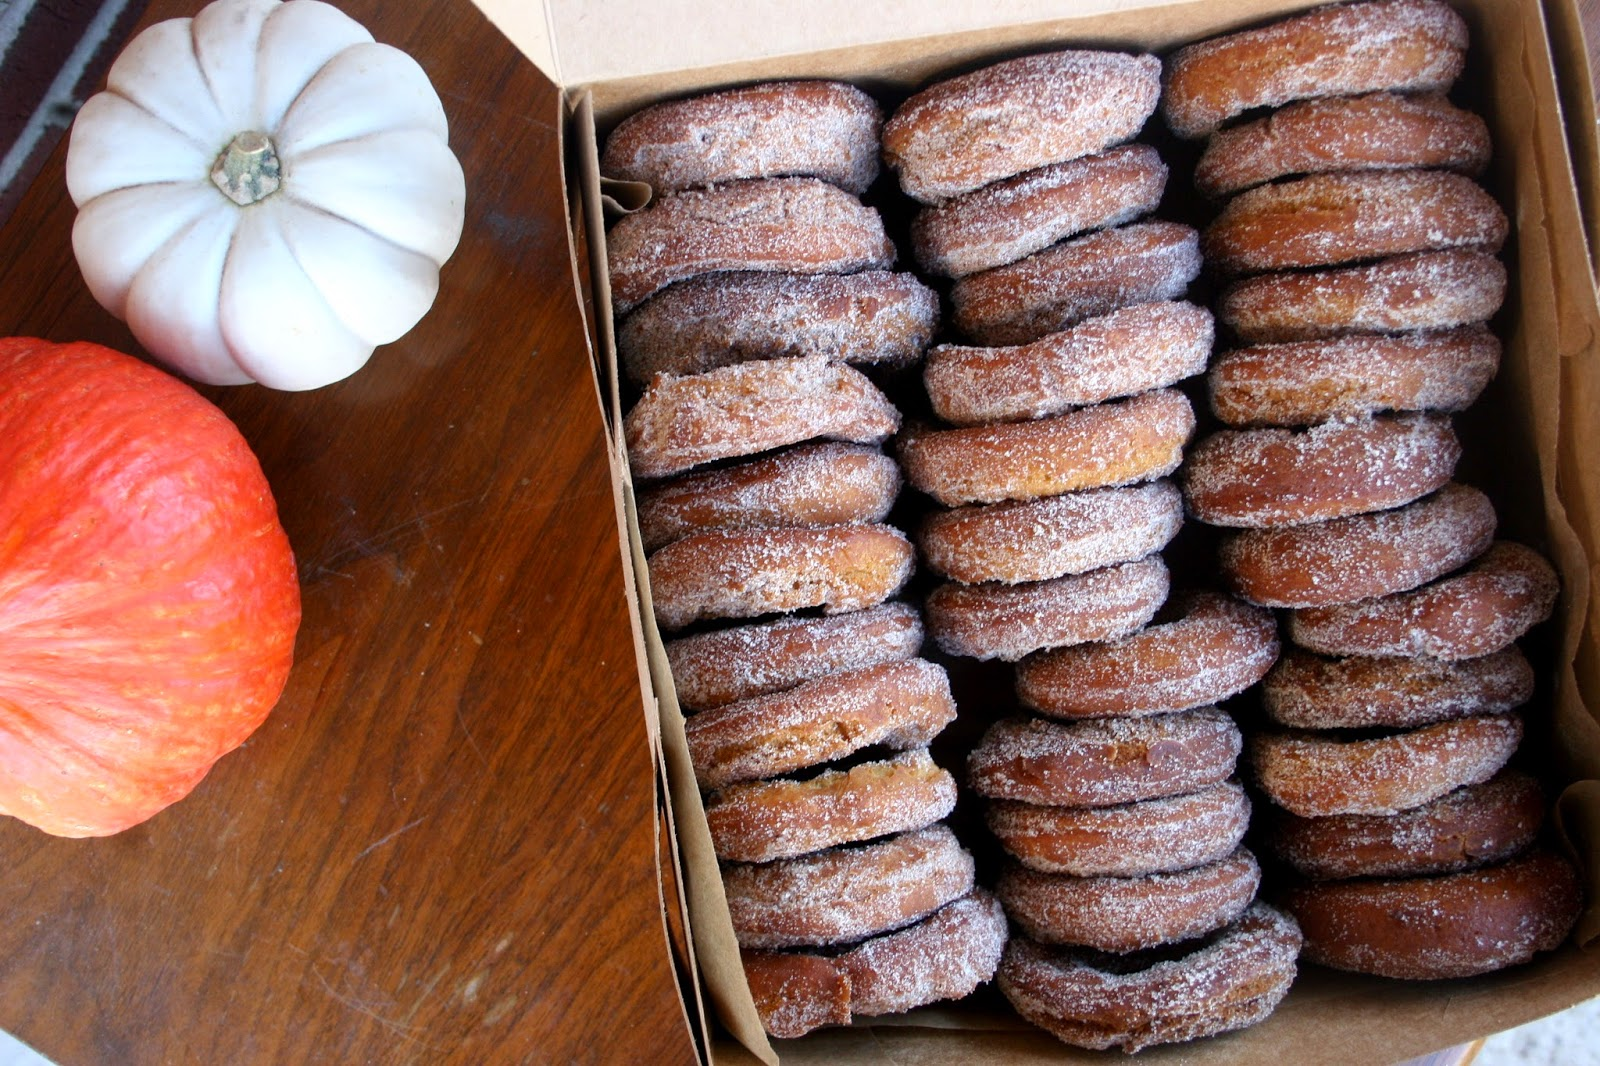 Homemade Apple Cider Donuts in box